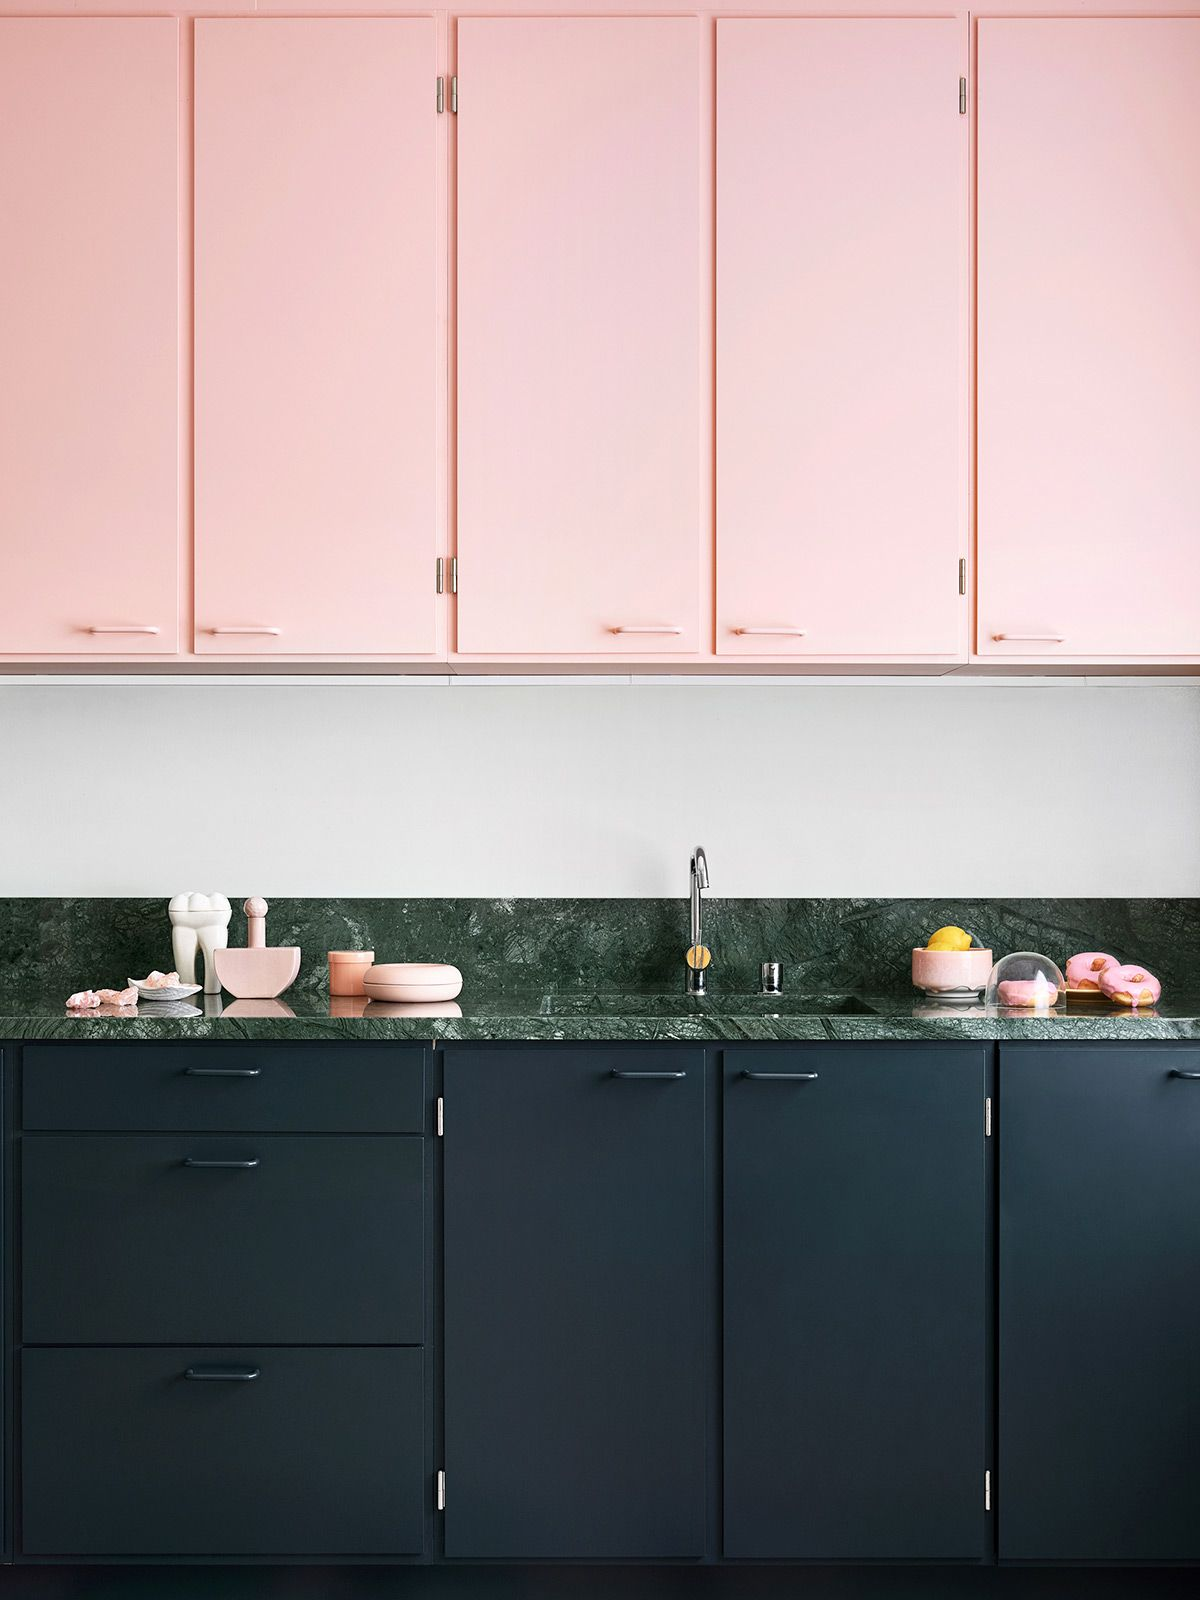 color story the palest pink  - Kitchen design color, Kitchen renovation, Plywood kitchen, Simple kitchen, Kitchen countertop colors, Interior design kitchen - this week's color story was inspired by all the pretty cherry and quince blossoms that are in season right now  my very favorite florals